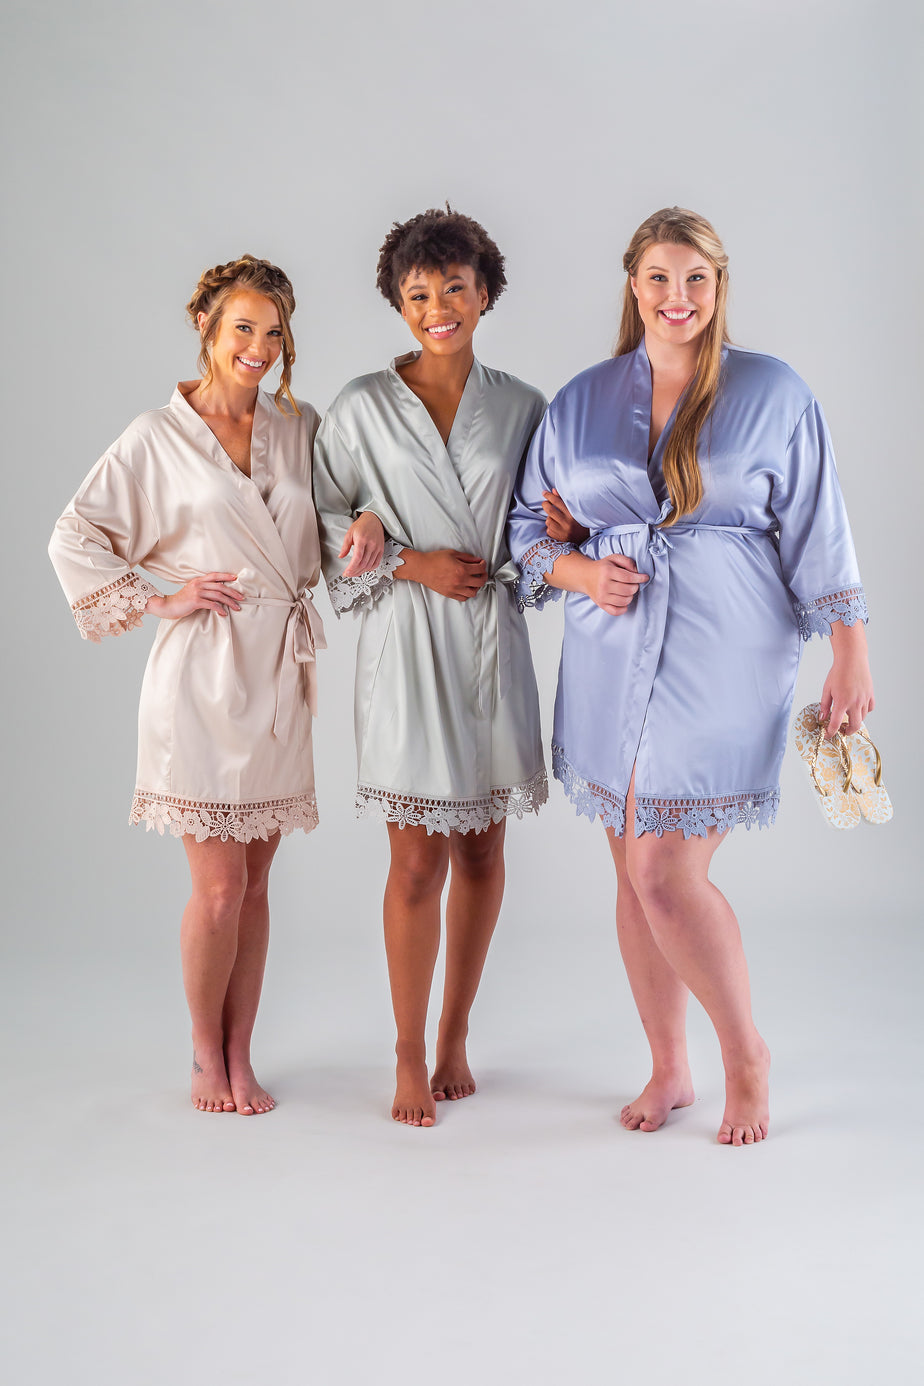 Satin And Lace Bridal And Bridesmaid Robes The Wedding Shoppe